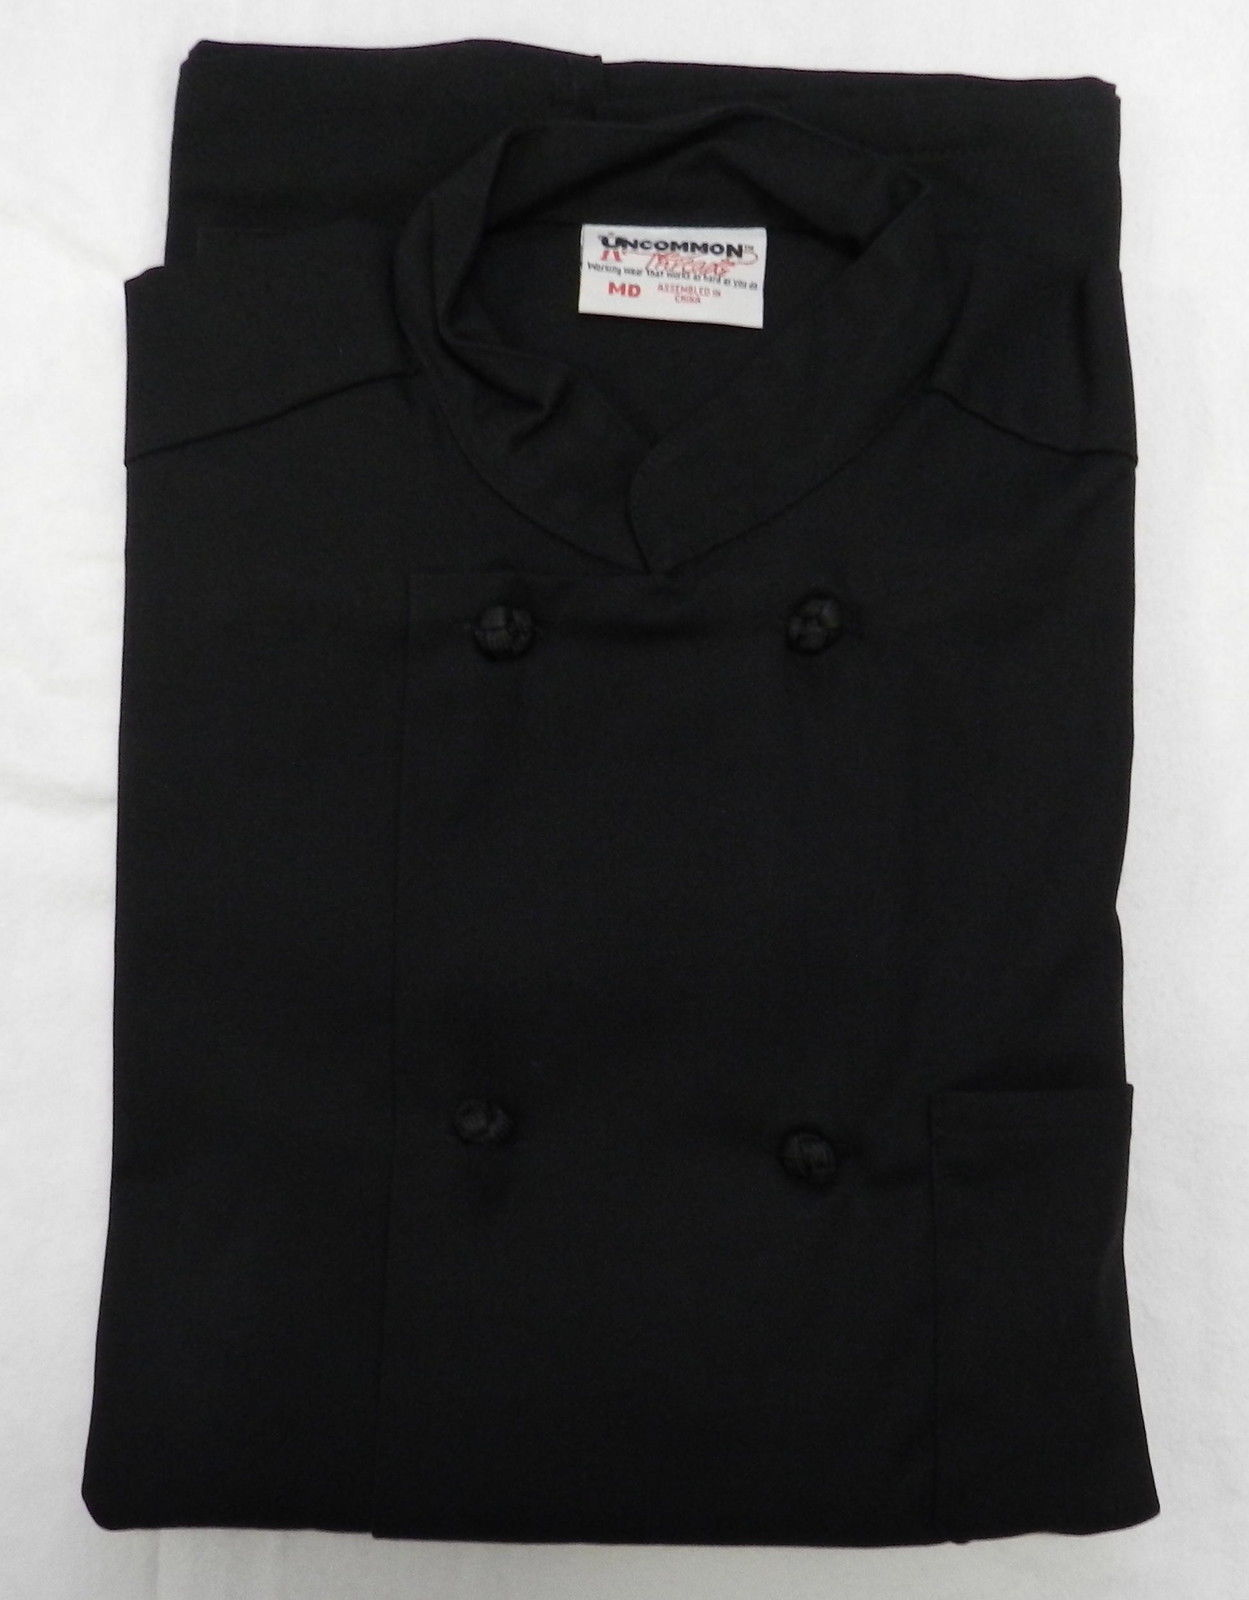 Chef Jacket Black 2XL Uncommon Threads 403 Cloth Knot Button Uniform Coat New